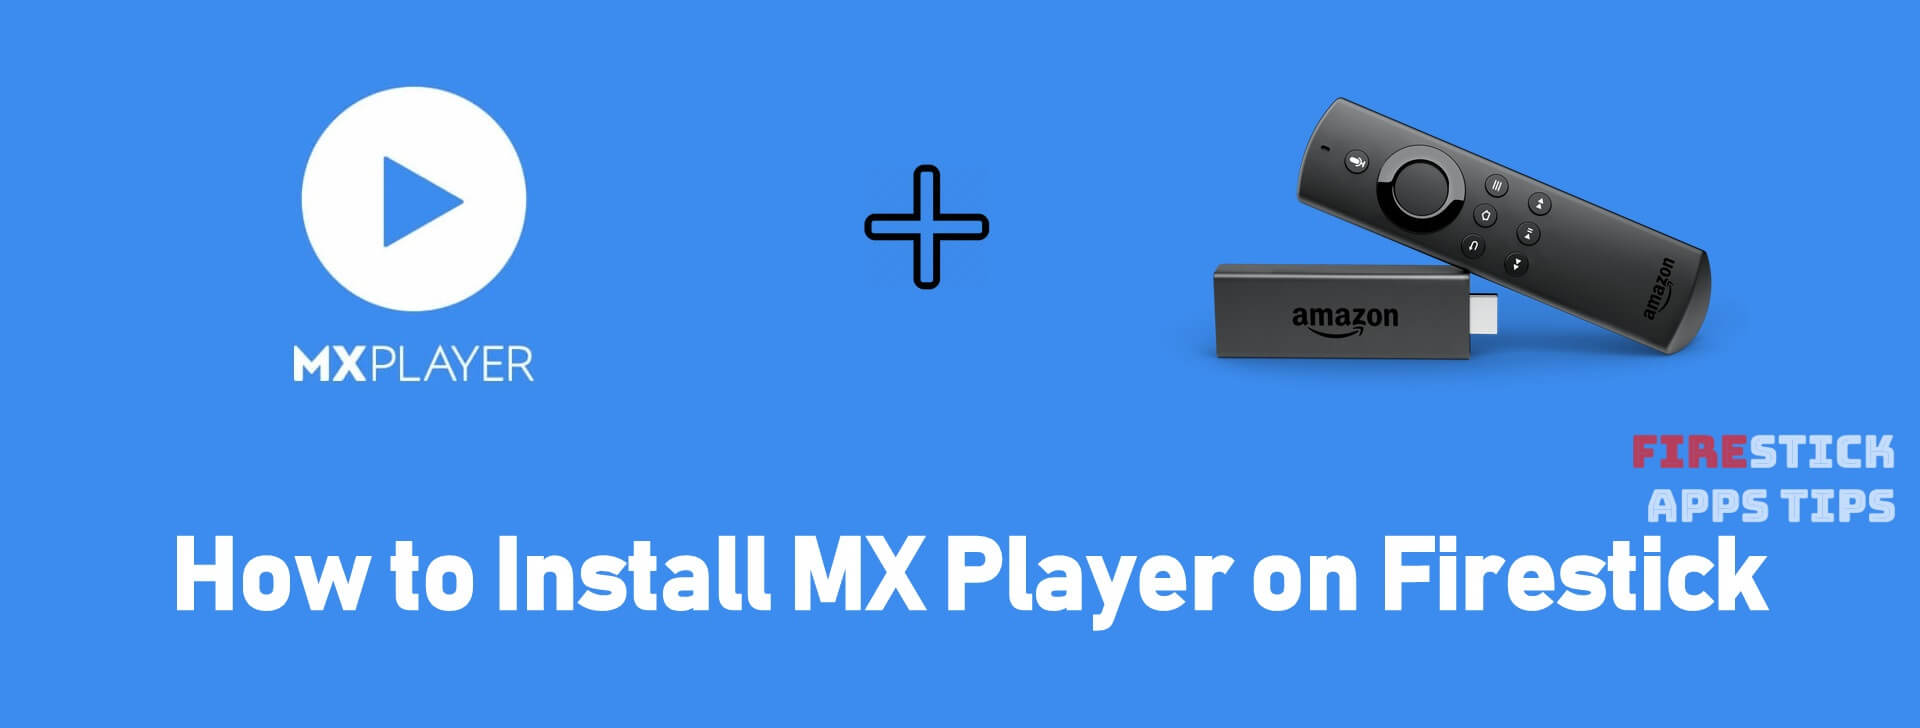 install mx player on firestick